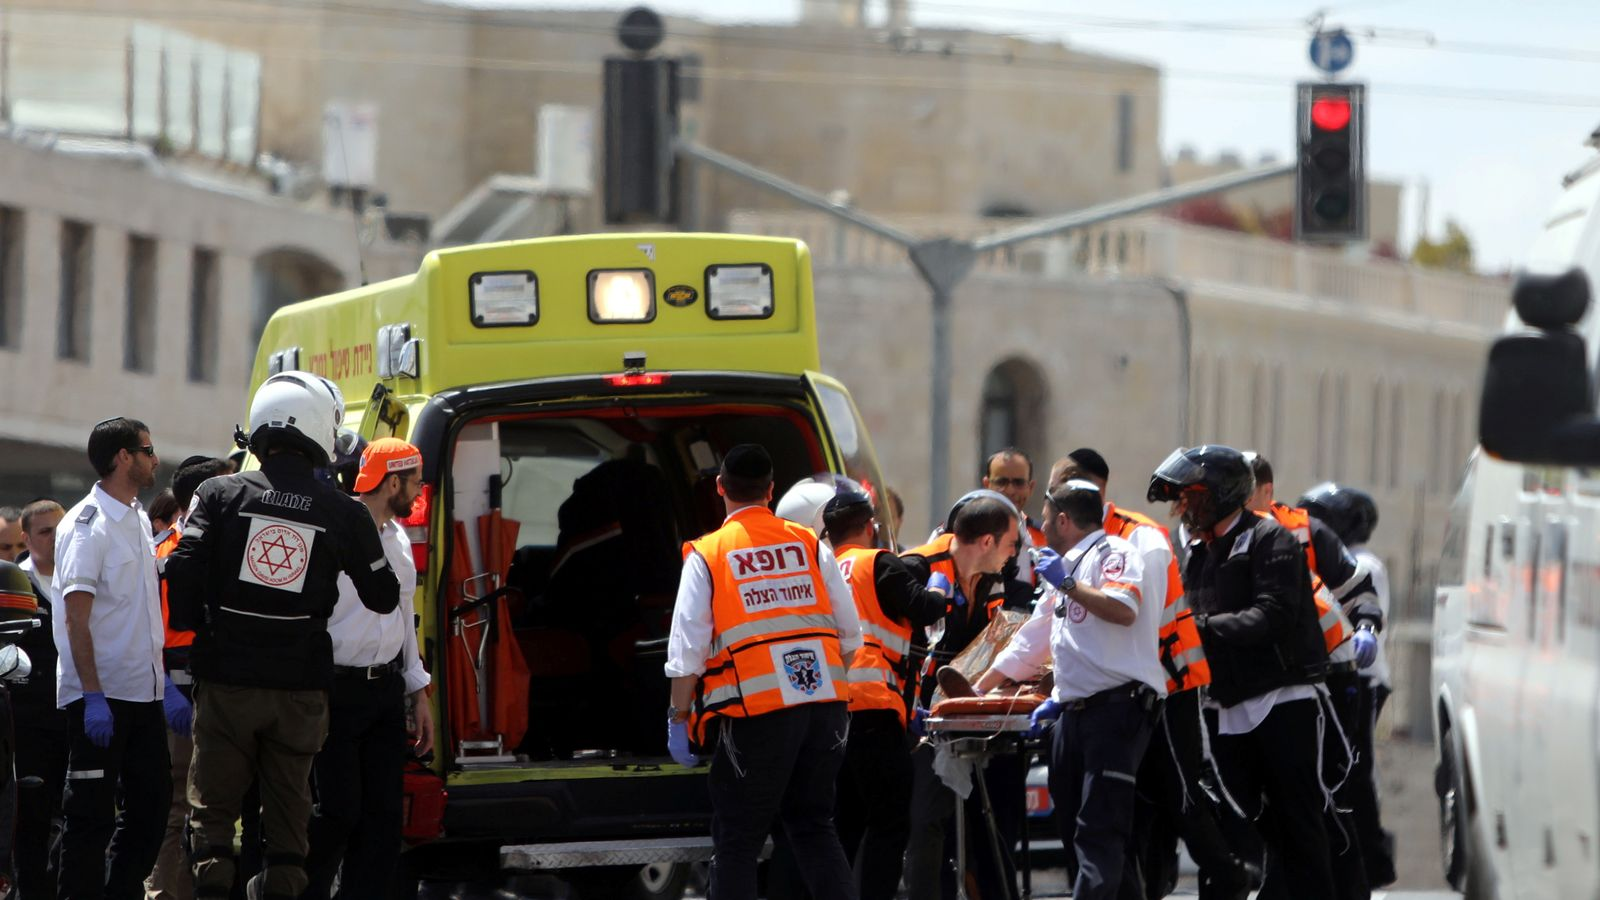 Paramedics treat an injured person following the attack